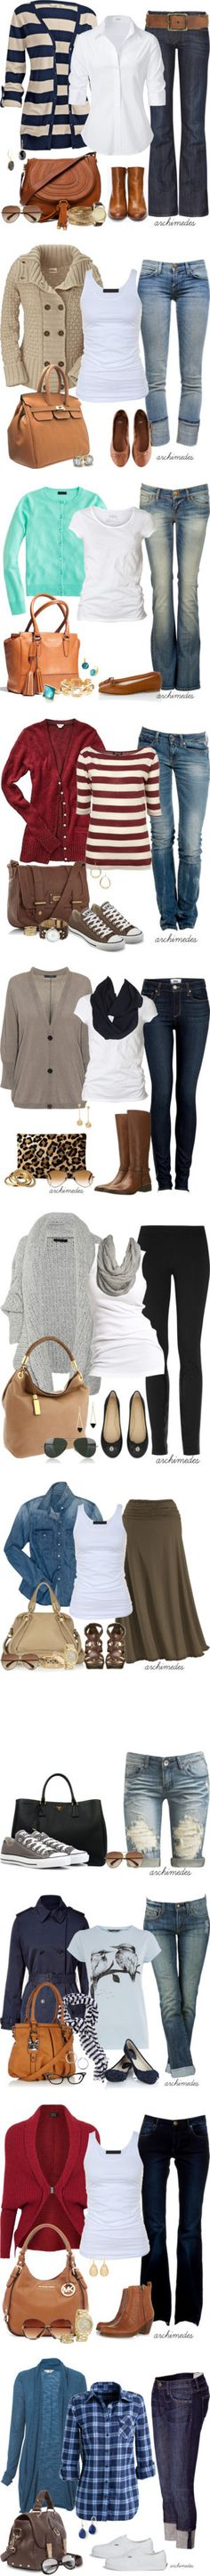 Cute color combos for Fall!